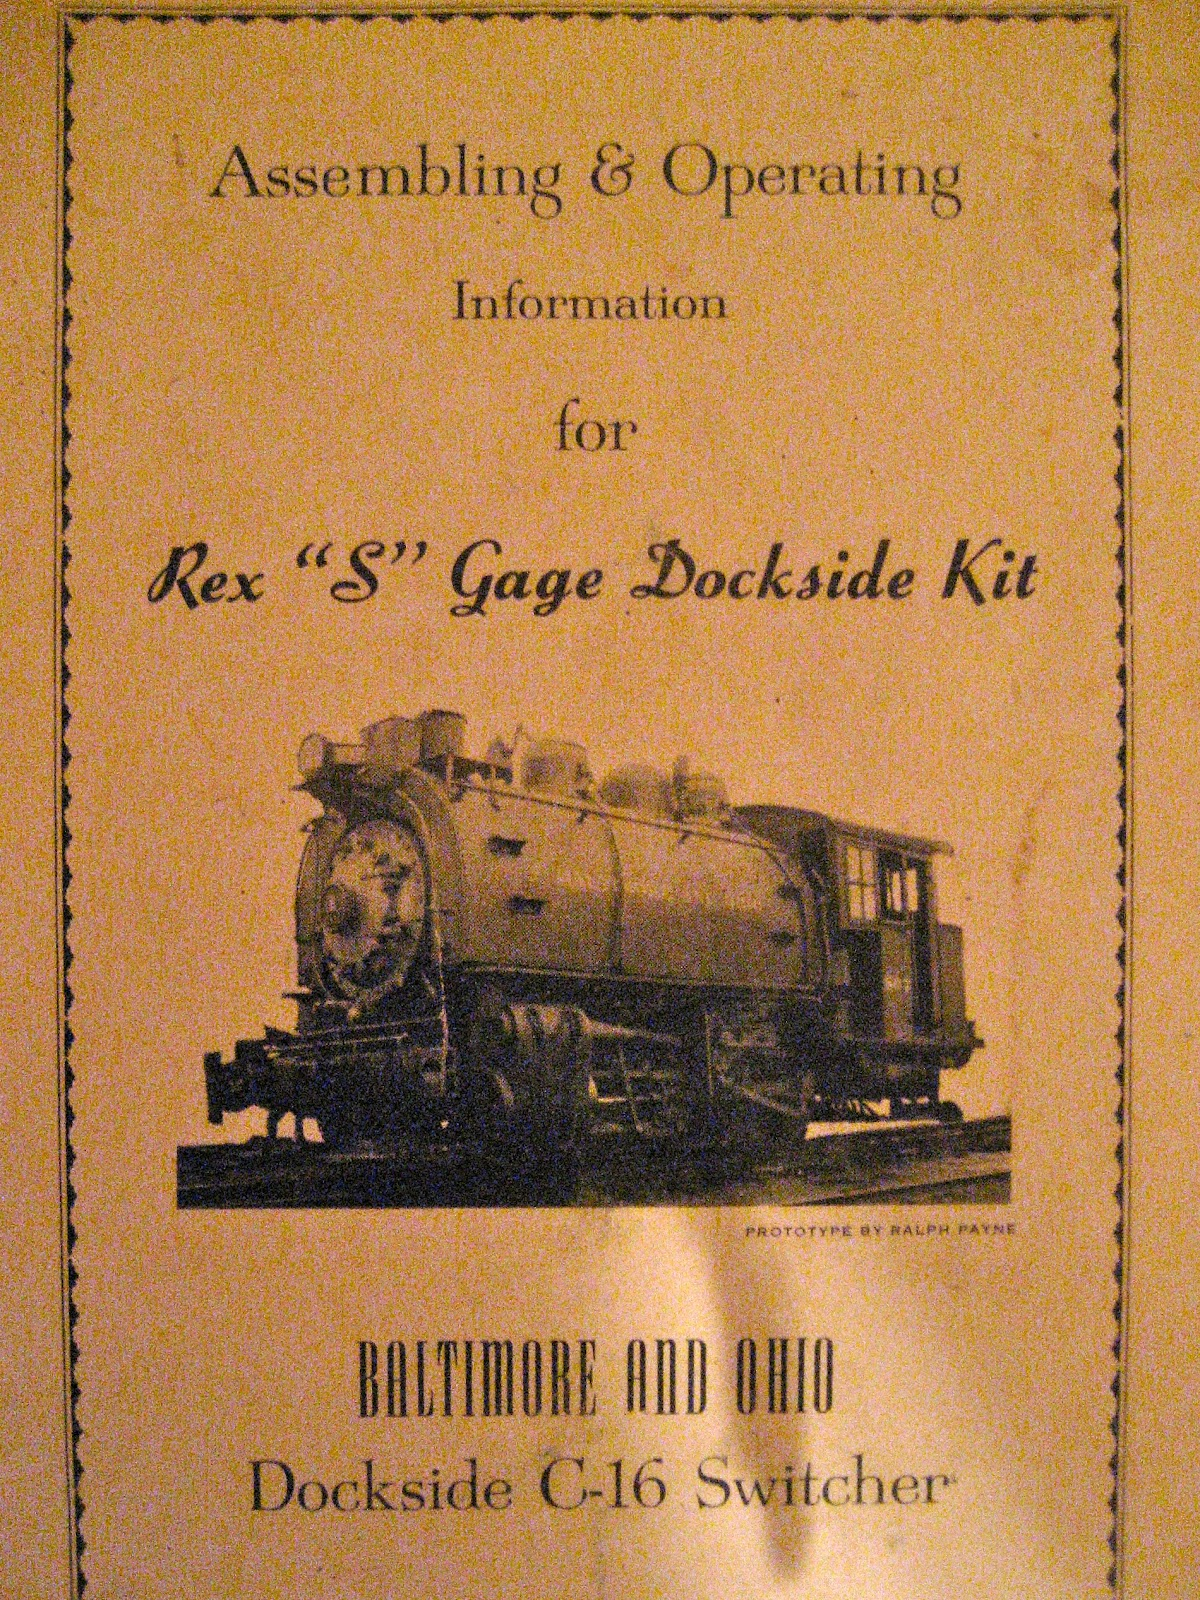 american flyer cabinet top train layout assembling operating information for rex s gage